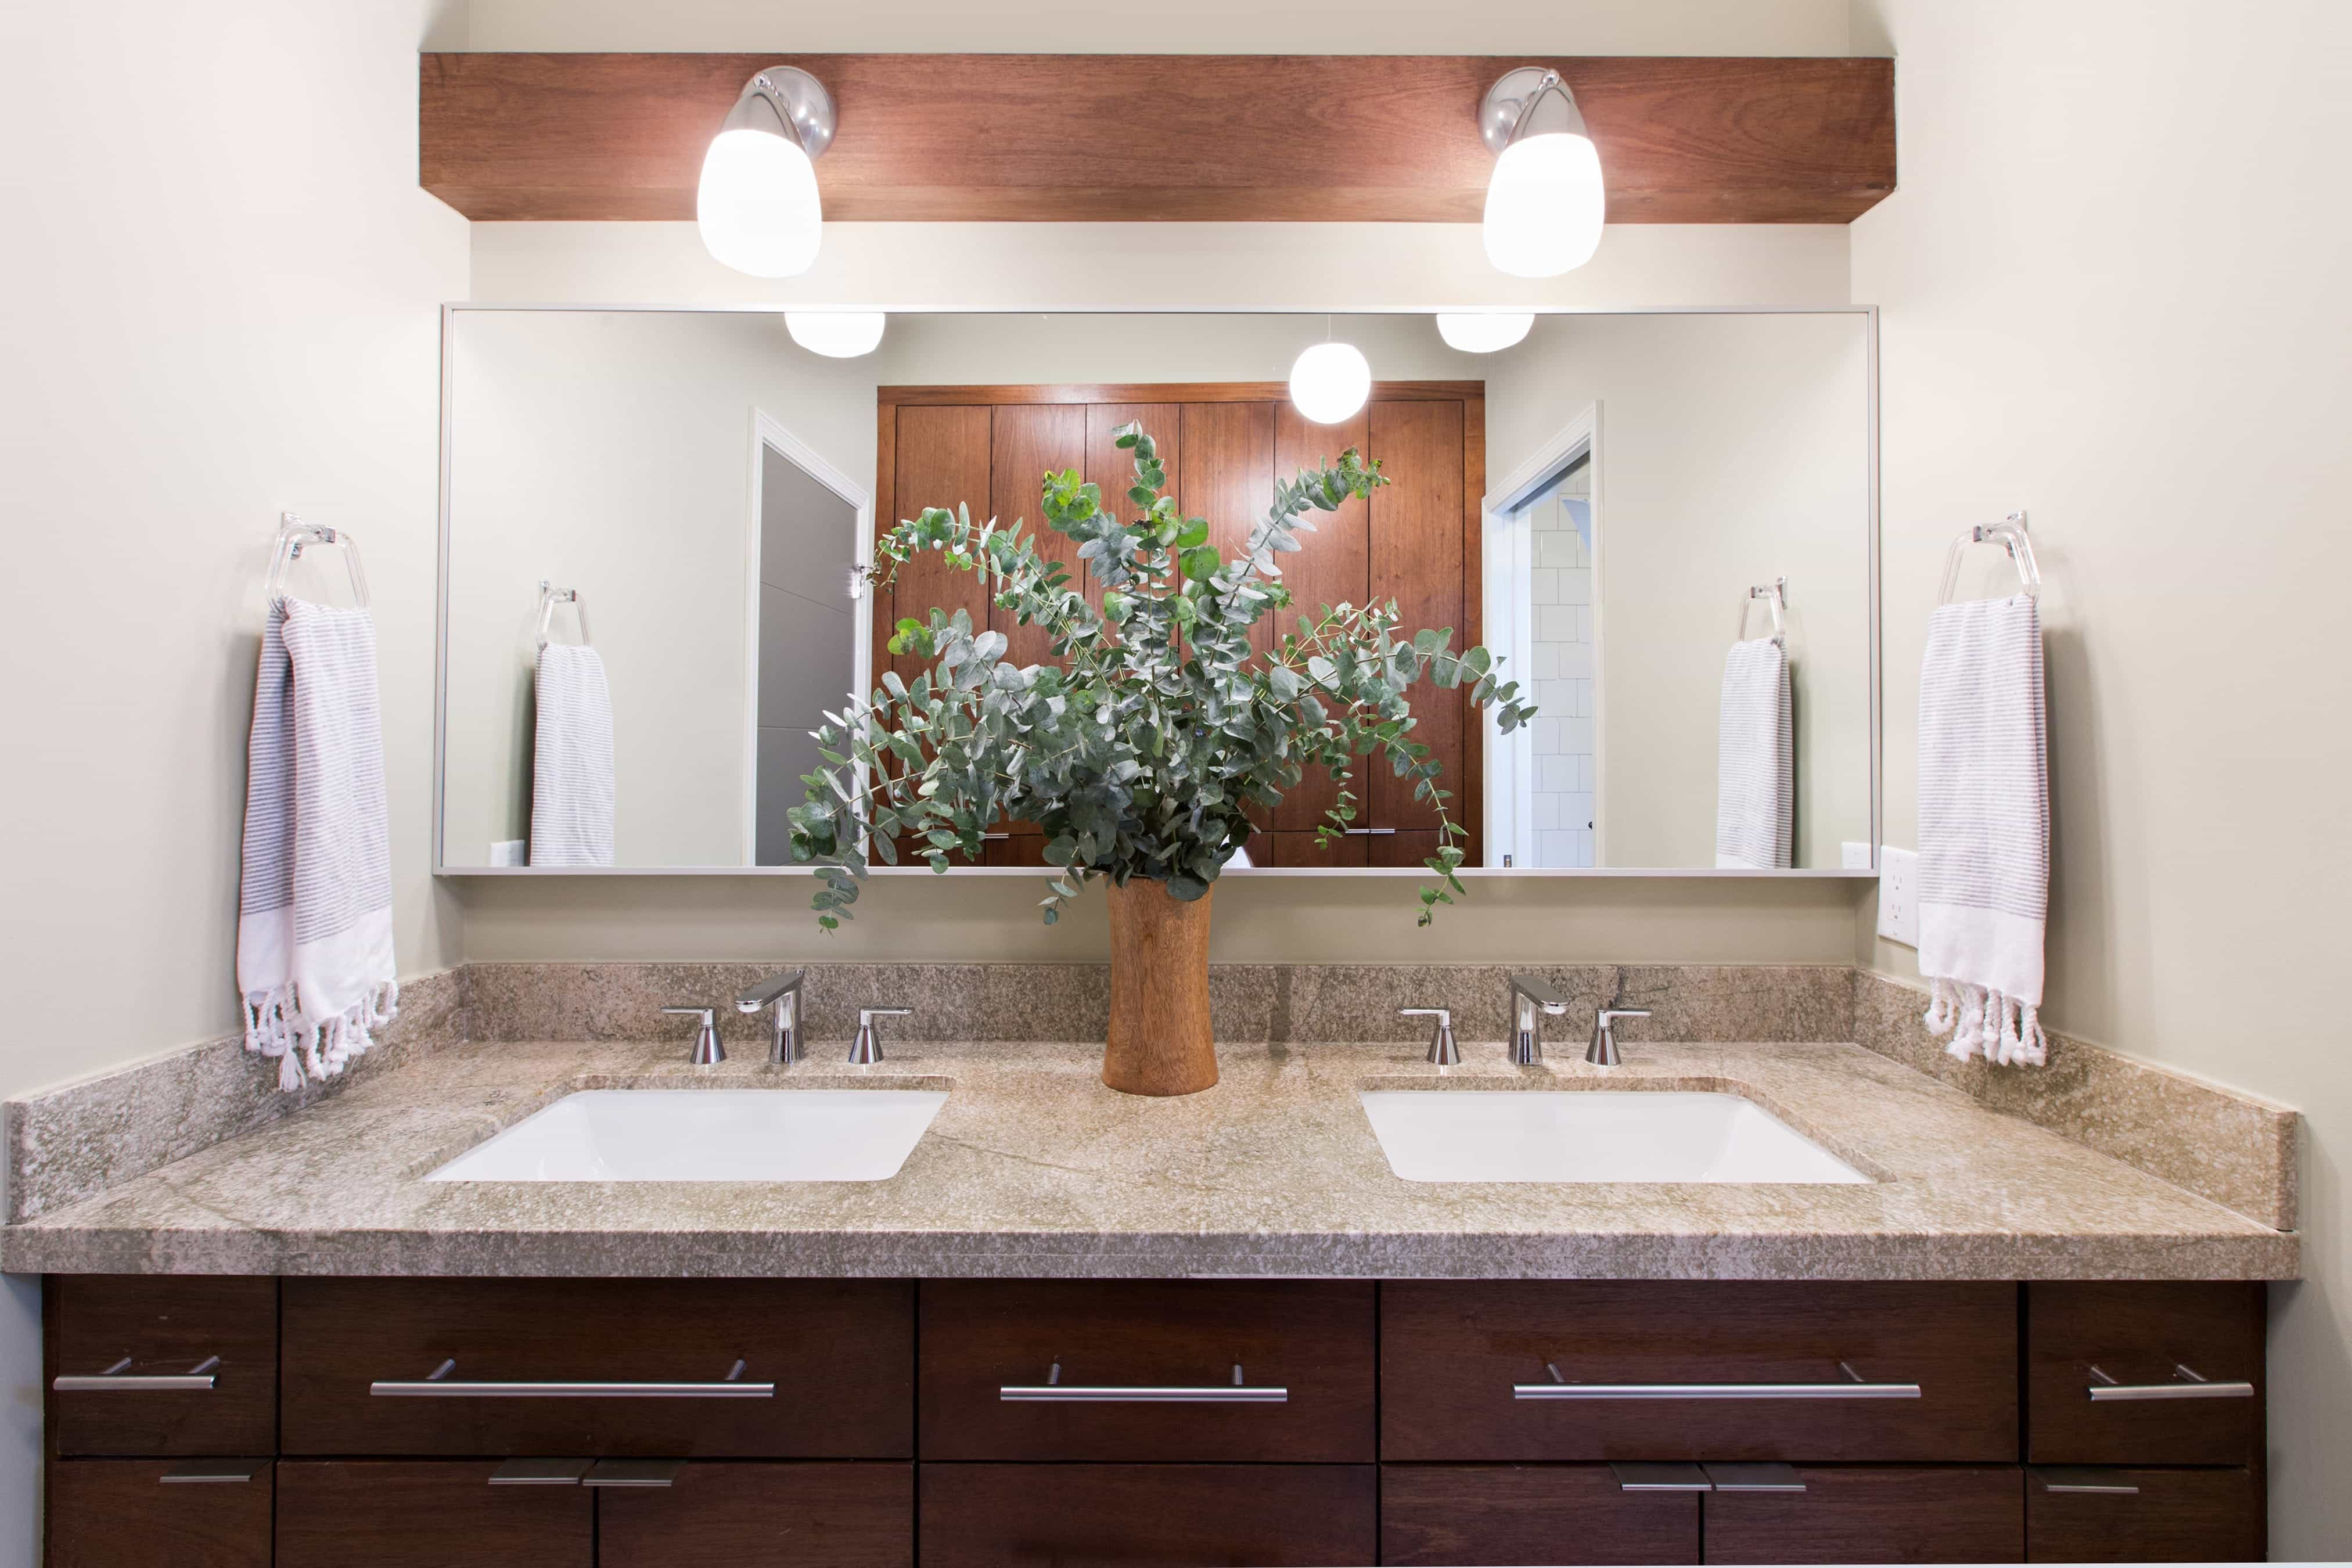 Chic Midcentury Modern Bathroom With Custom Mirror And Light Fixtures (Image 4 of 20)